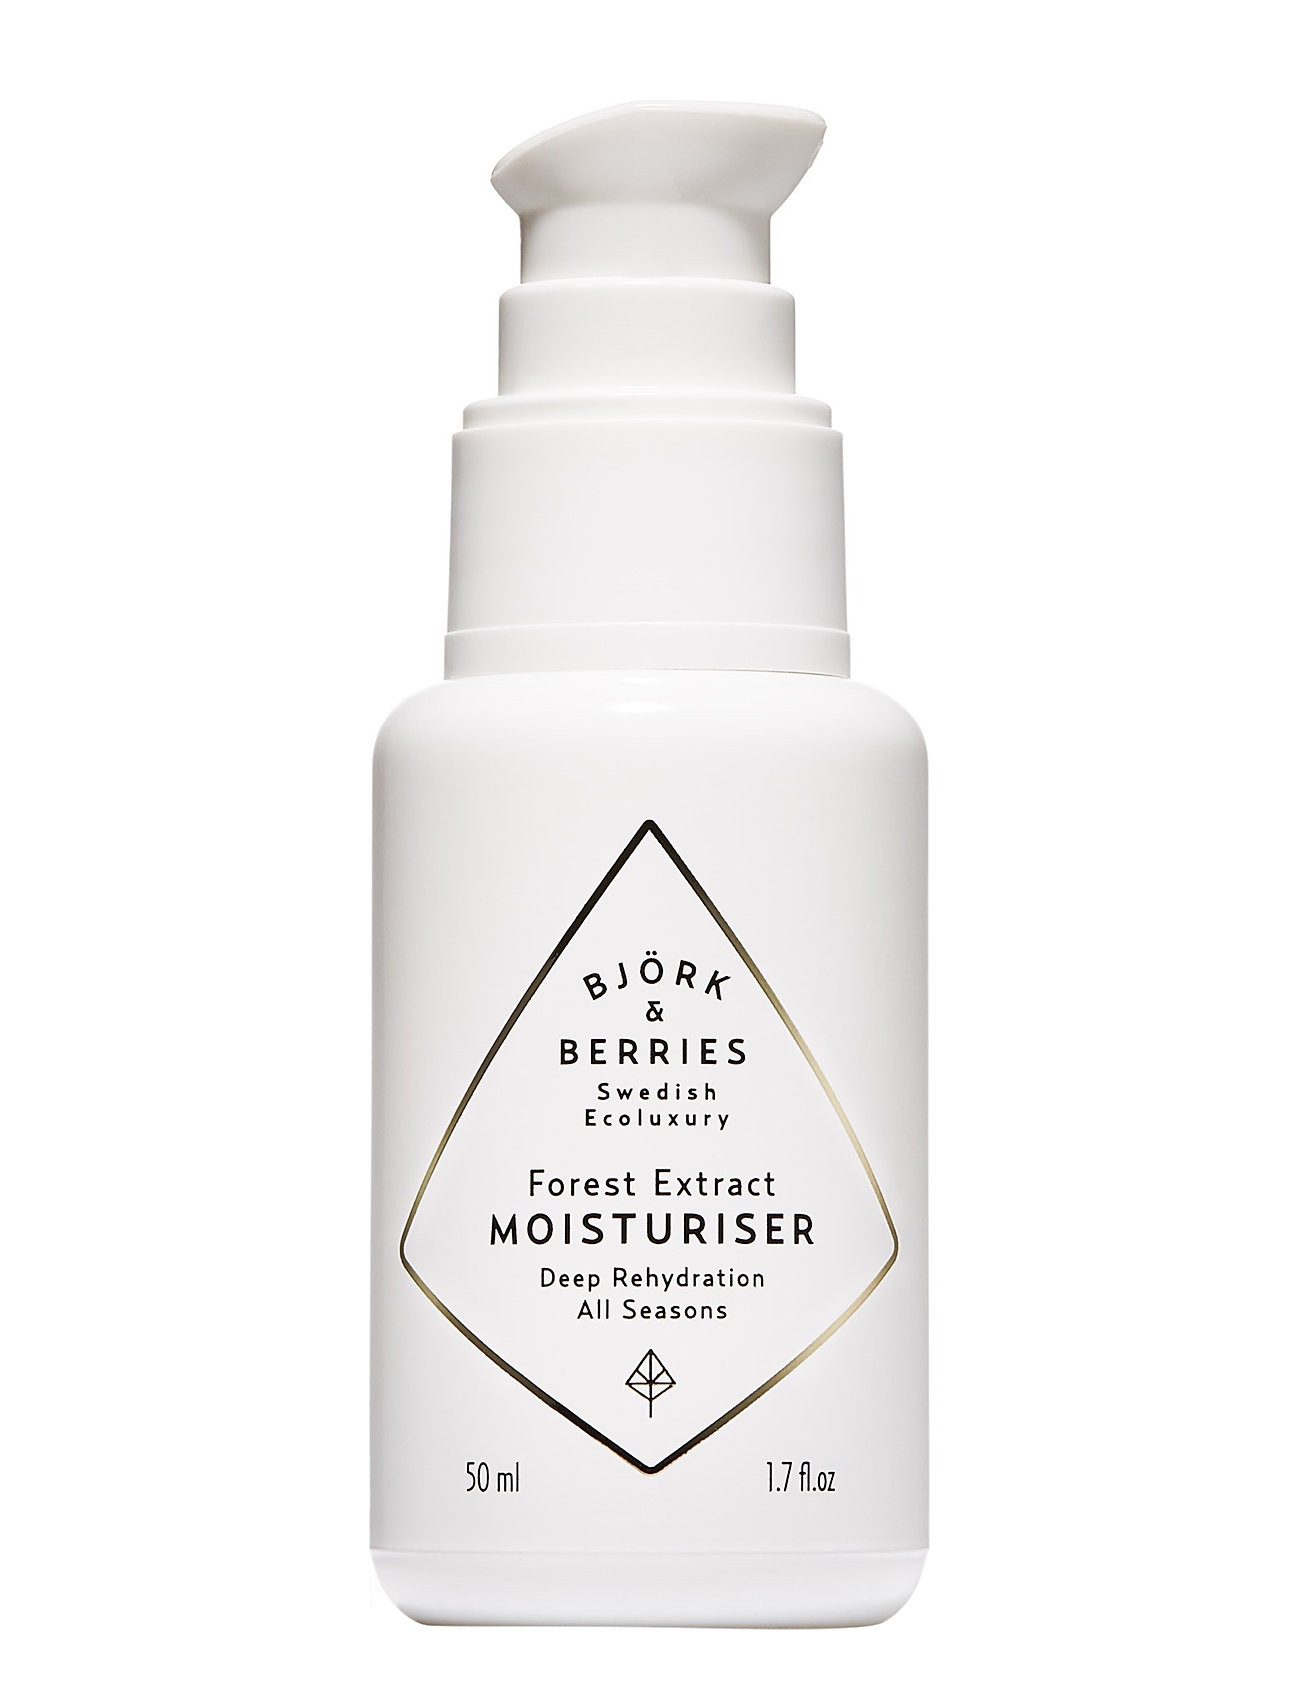 Björk & Berries Forest Extract Moisturiser - CLEAR